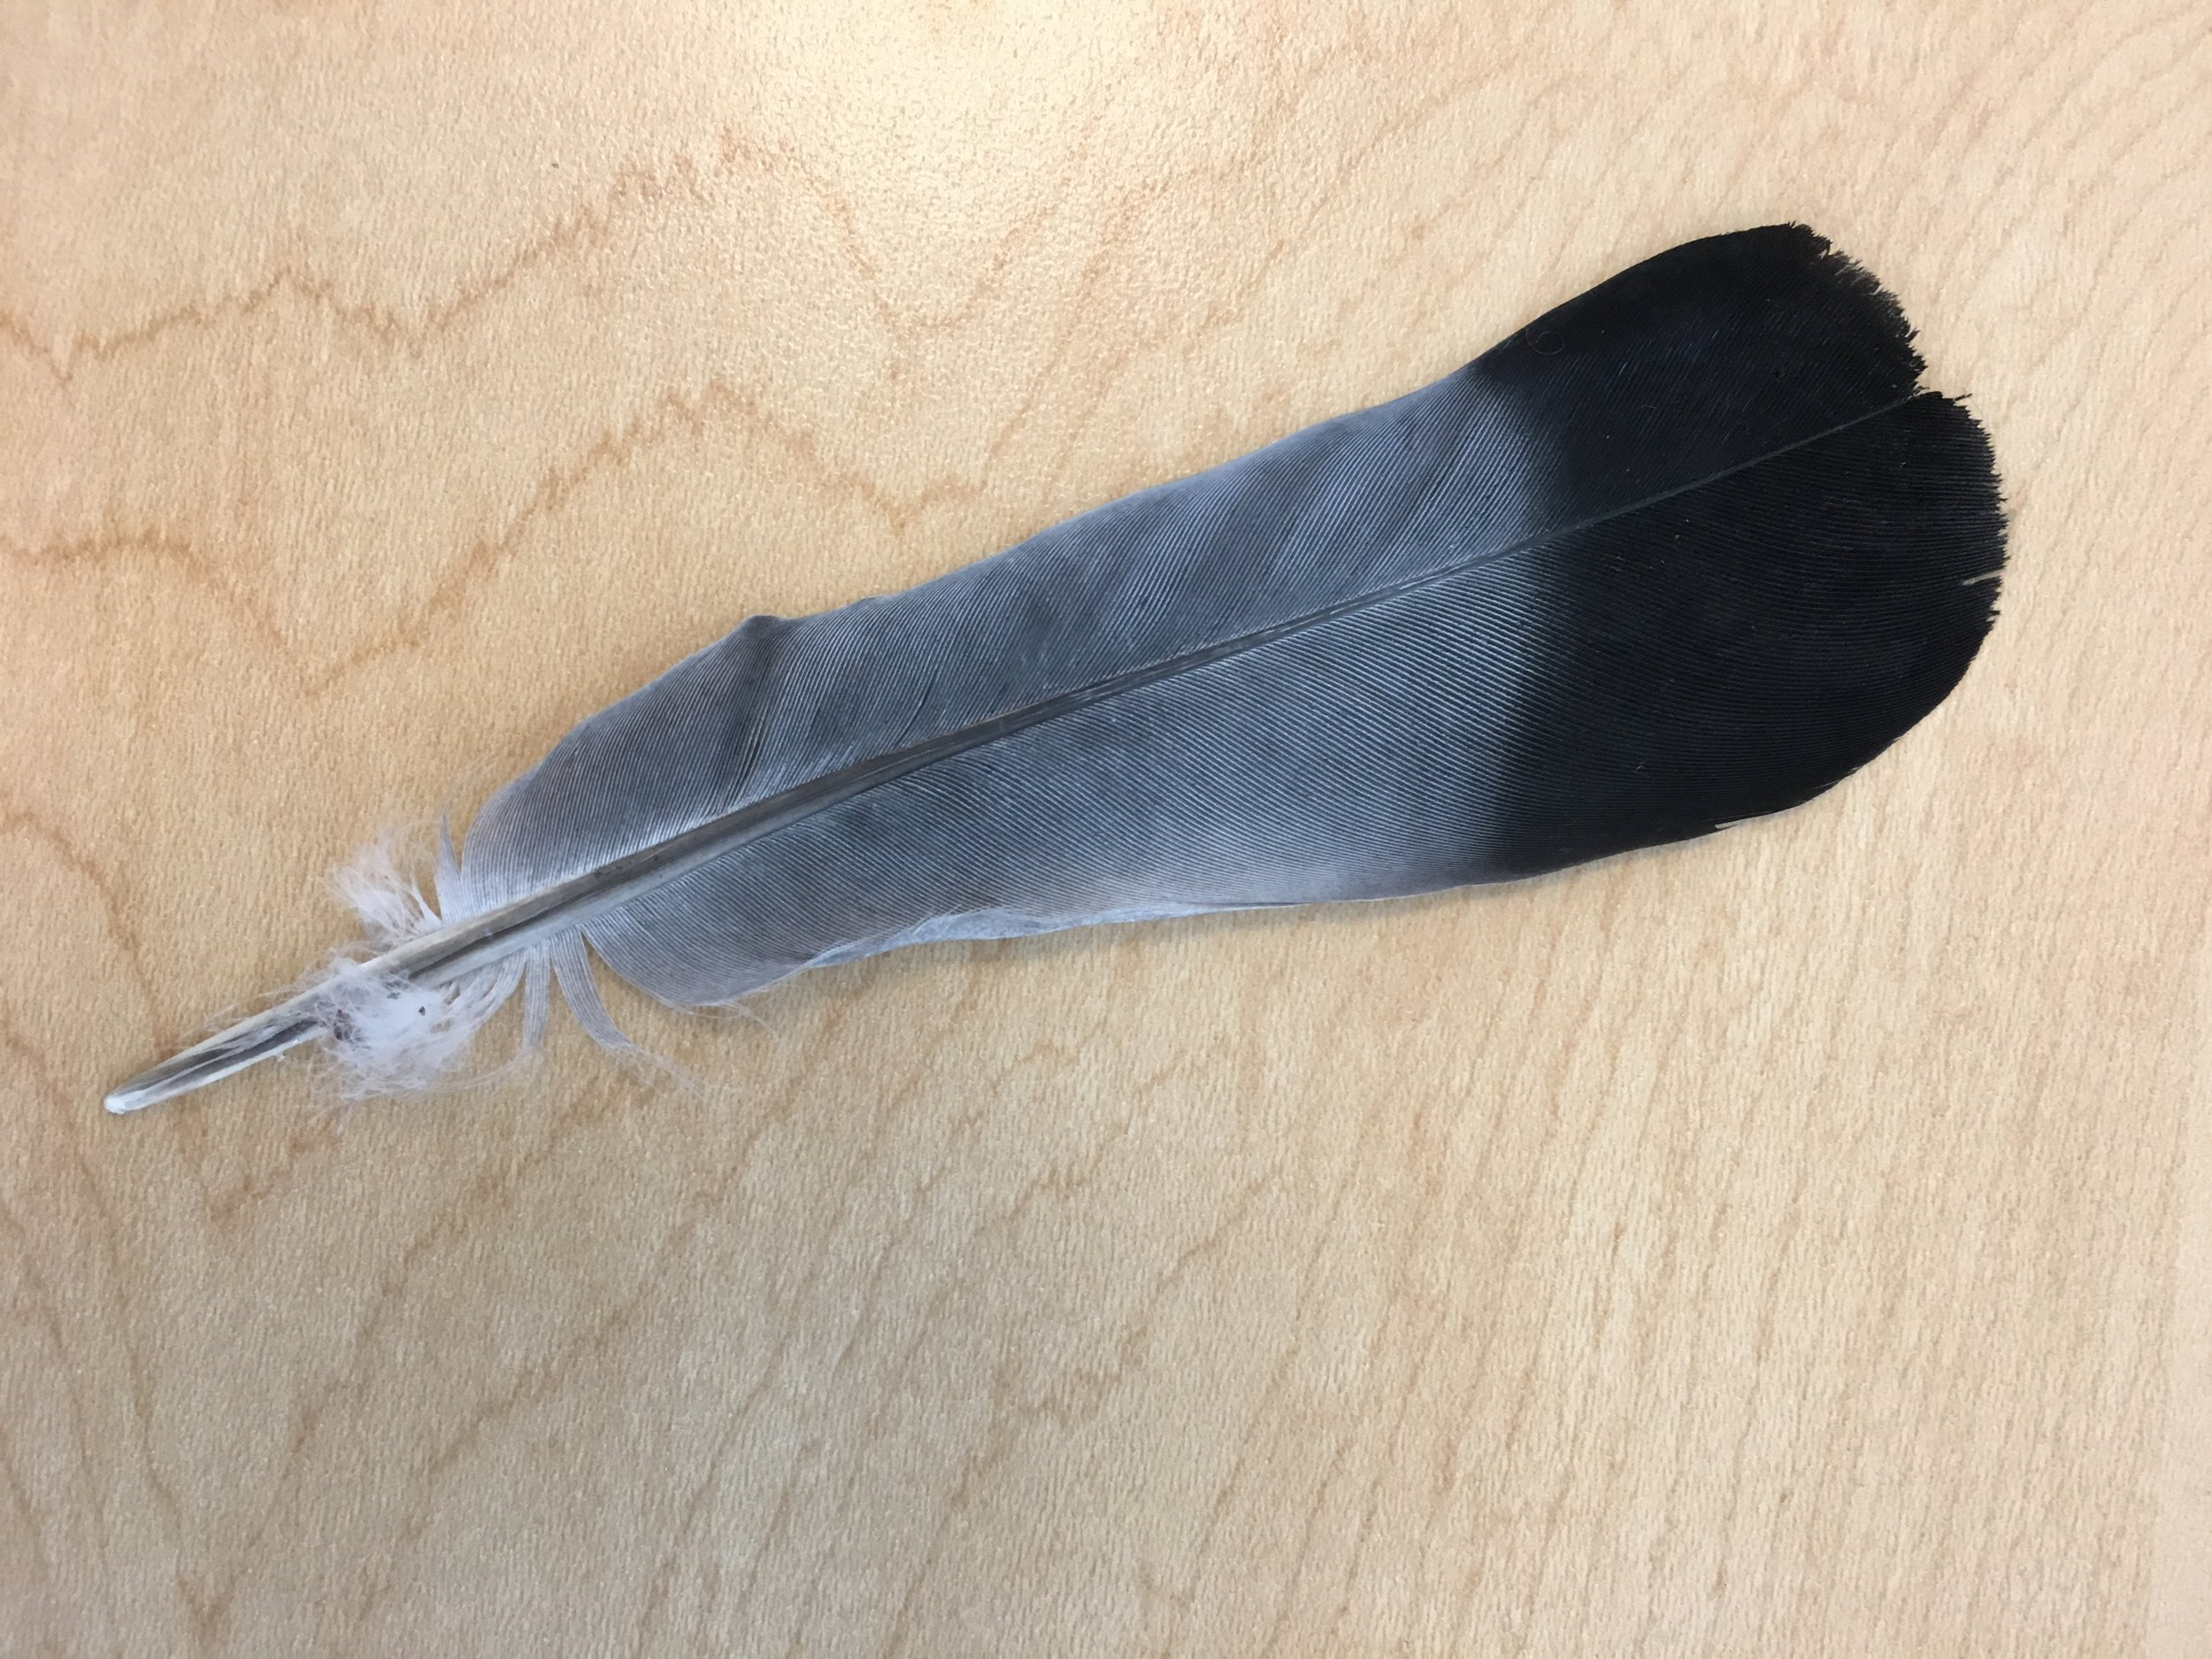 A humble Rock Dove feather. An easy bird to see just about anywhere. Which means a girl can bird anywhere if she looks up (or down as was the case for this feather).